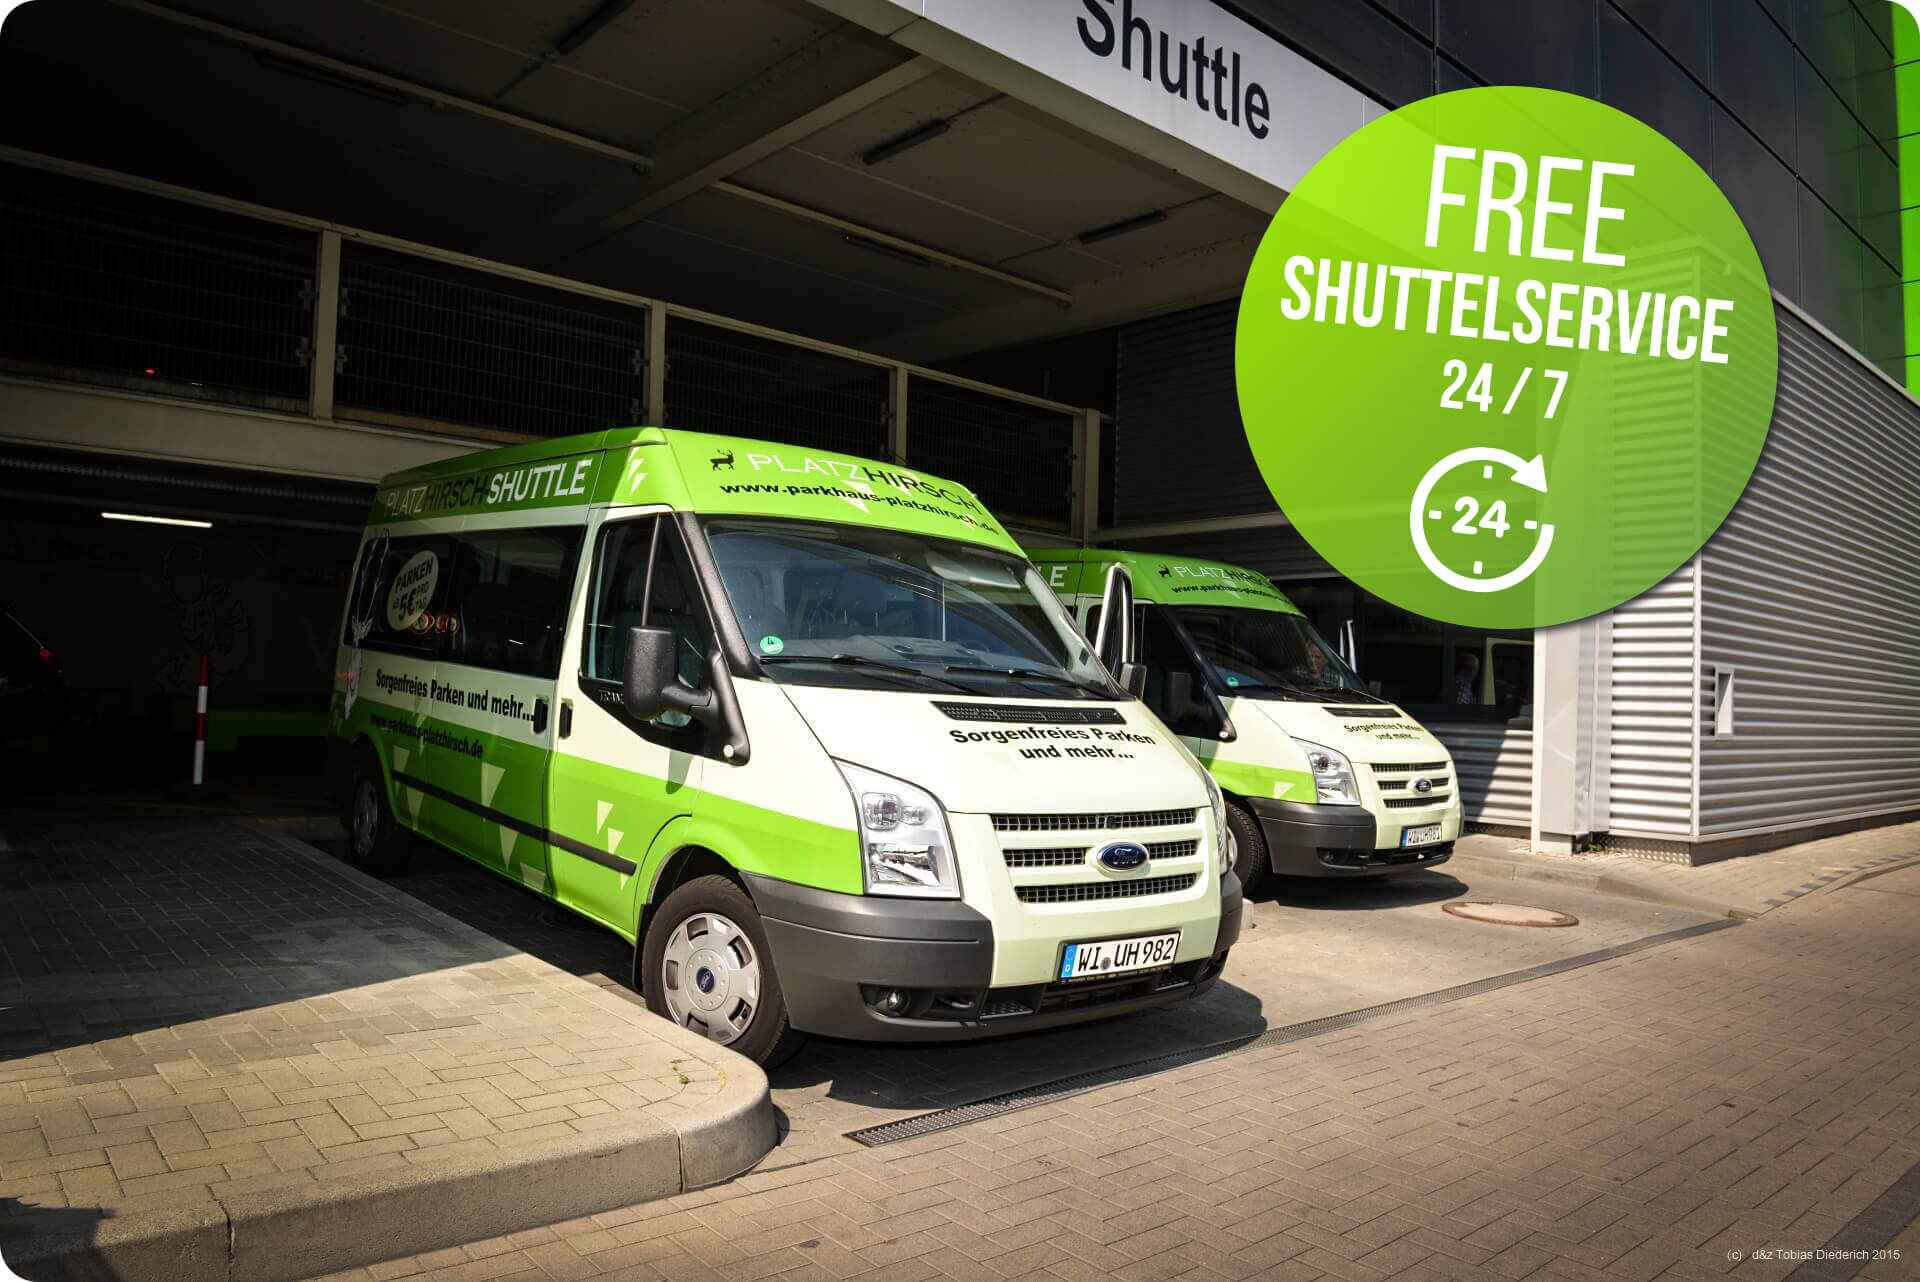 Comfortable around the clock shuttleservice, free of charge -  365 days a year